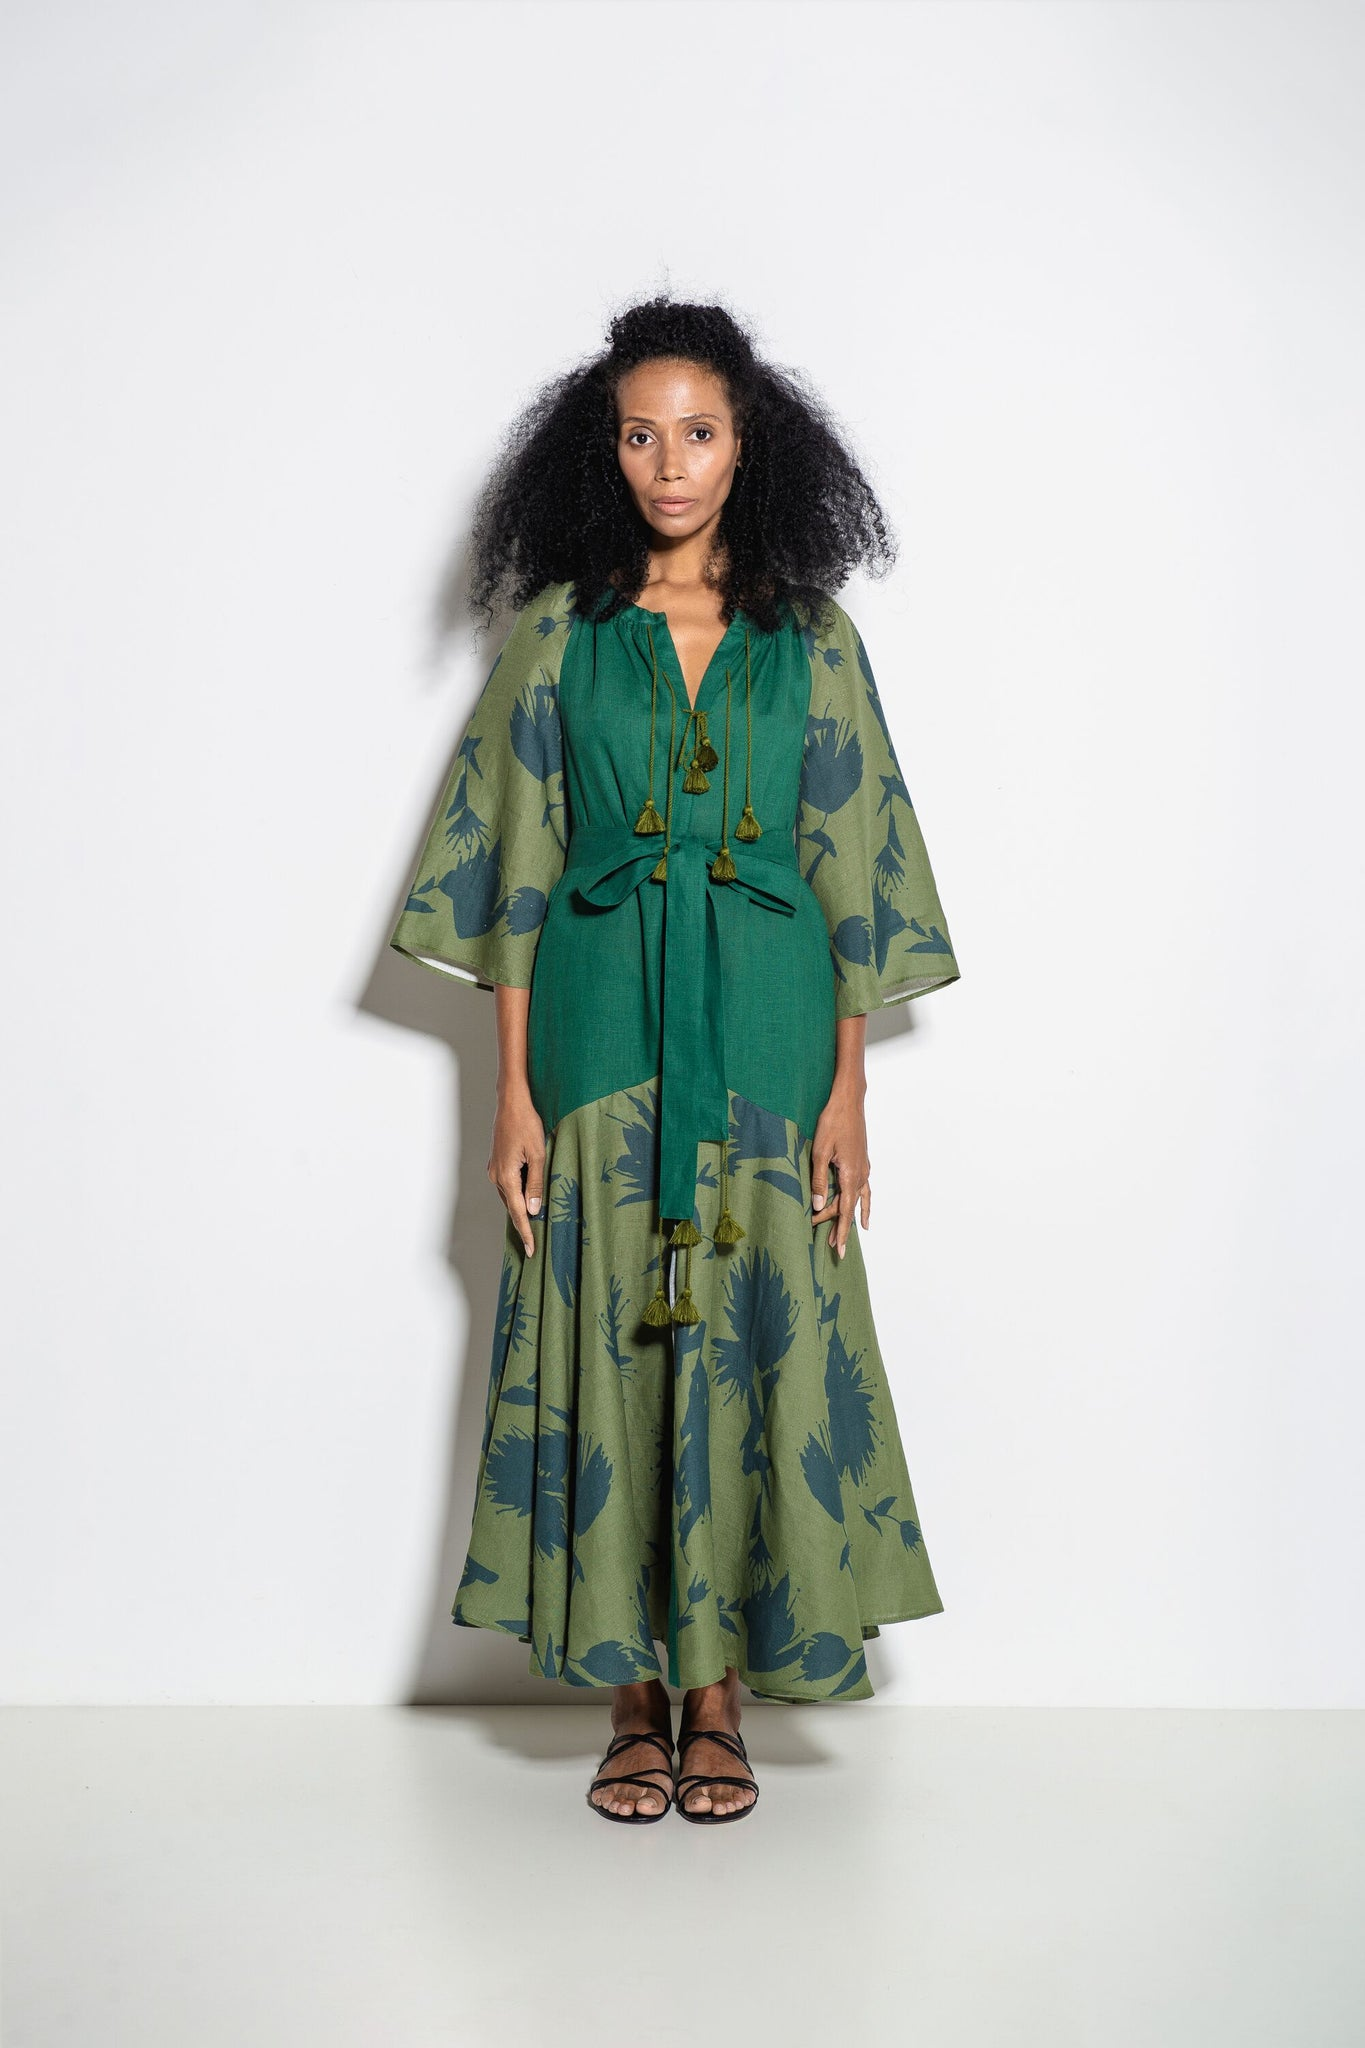 Alex+Gabrielle Midi Dress in Green